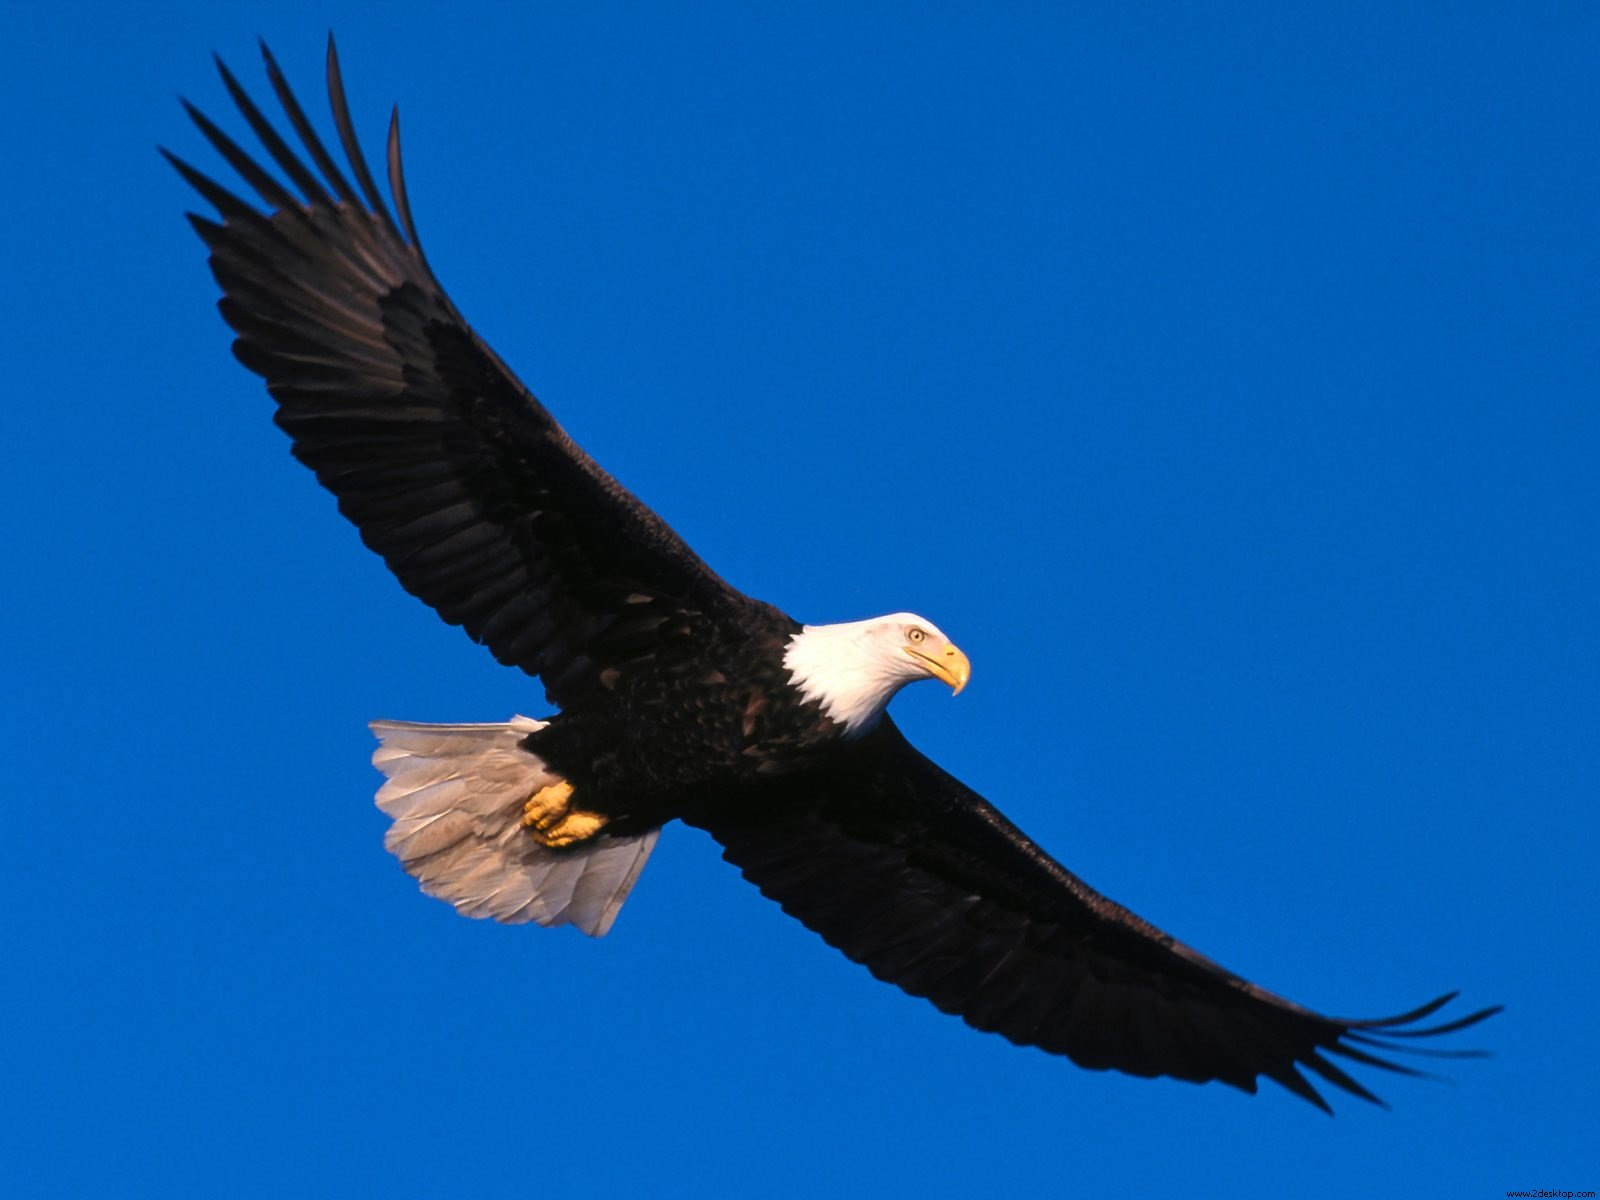 A Bald Eagle Soaring Into The Sky With An Empty Deck Of Cruise Ship Background